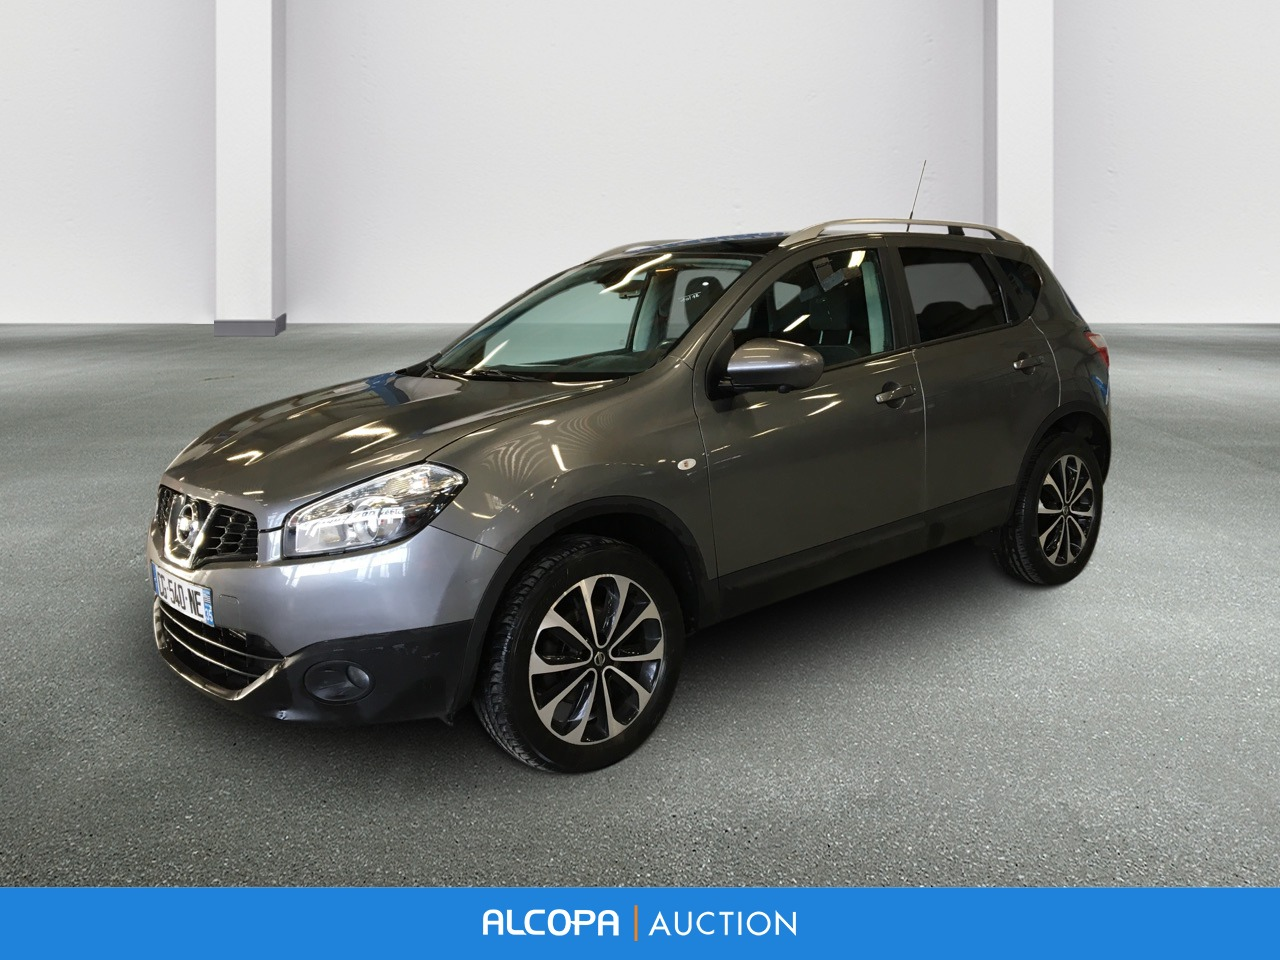 nissan qashqai qashqai 1 5 dci 110 fap connect edition alcopa auction. Black Bedroom Furniture Sets. Home Design Ideas